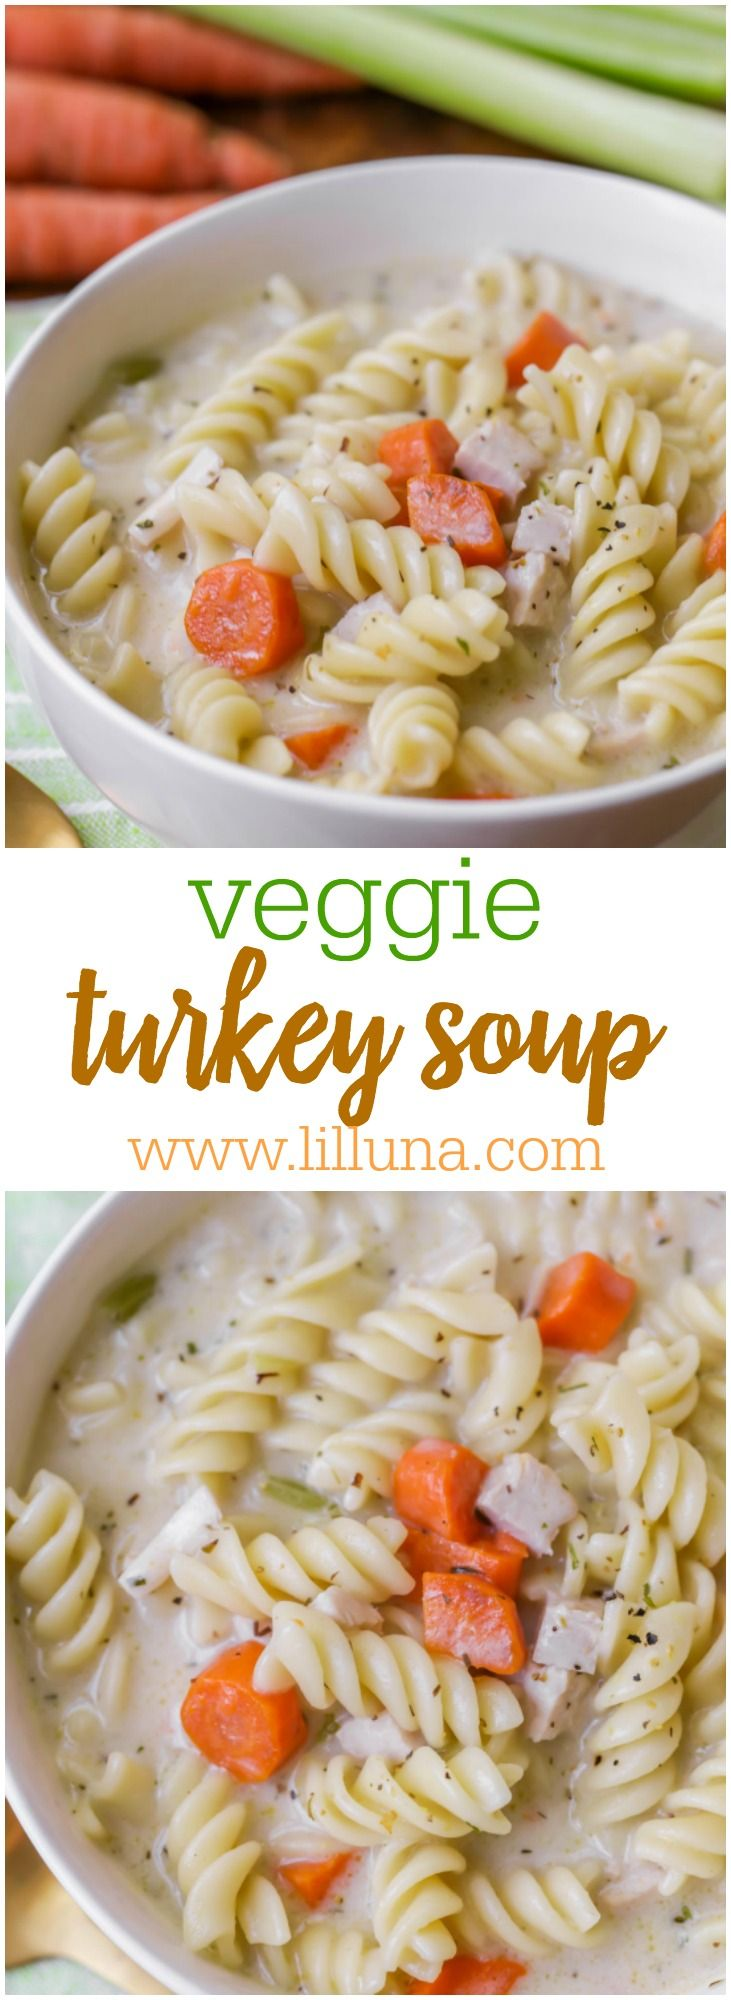 Hearty Turkey Soup - this delicious recipe is flavorful and filled with rotini pasta, celery, carrots and turkey - perfect for fall!